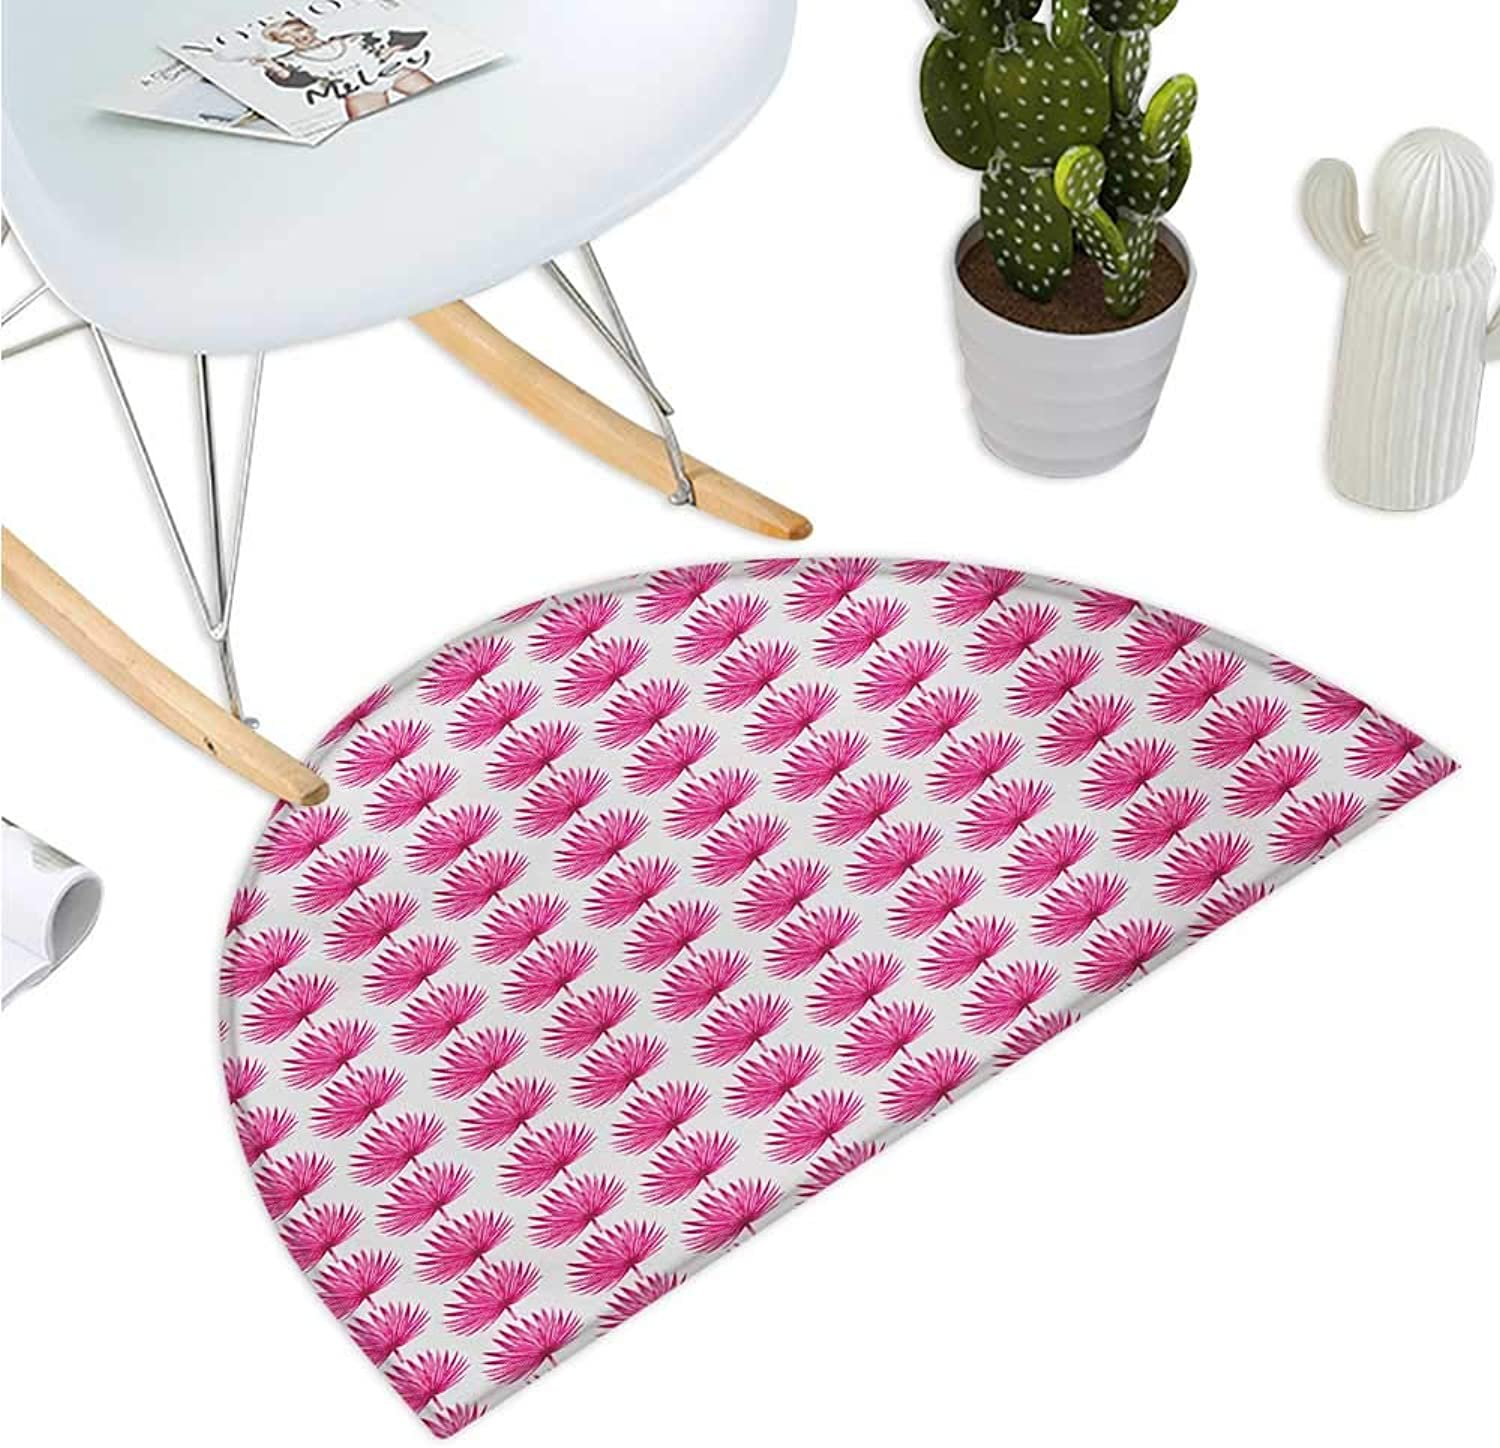 Pink and White Semicircular Cushion Botanical Hawaii Jungle Pattern with Palm Leaves Exotic Rainforest Halfmoon doormats H 39.3  xD 59  Magenta and White